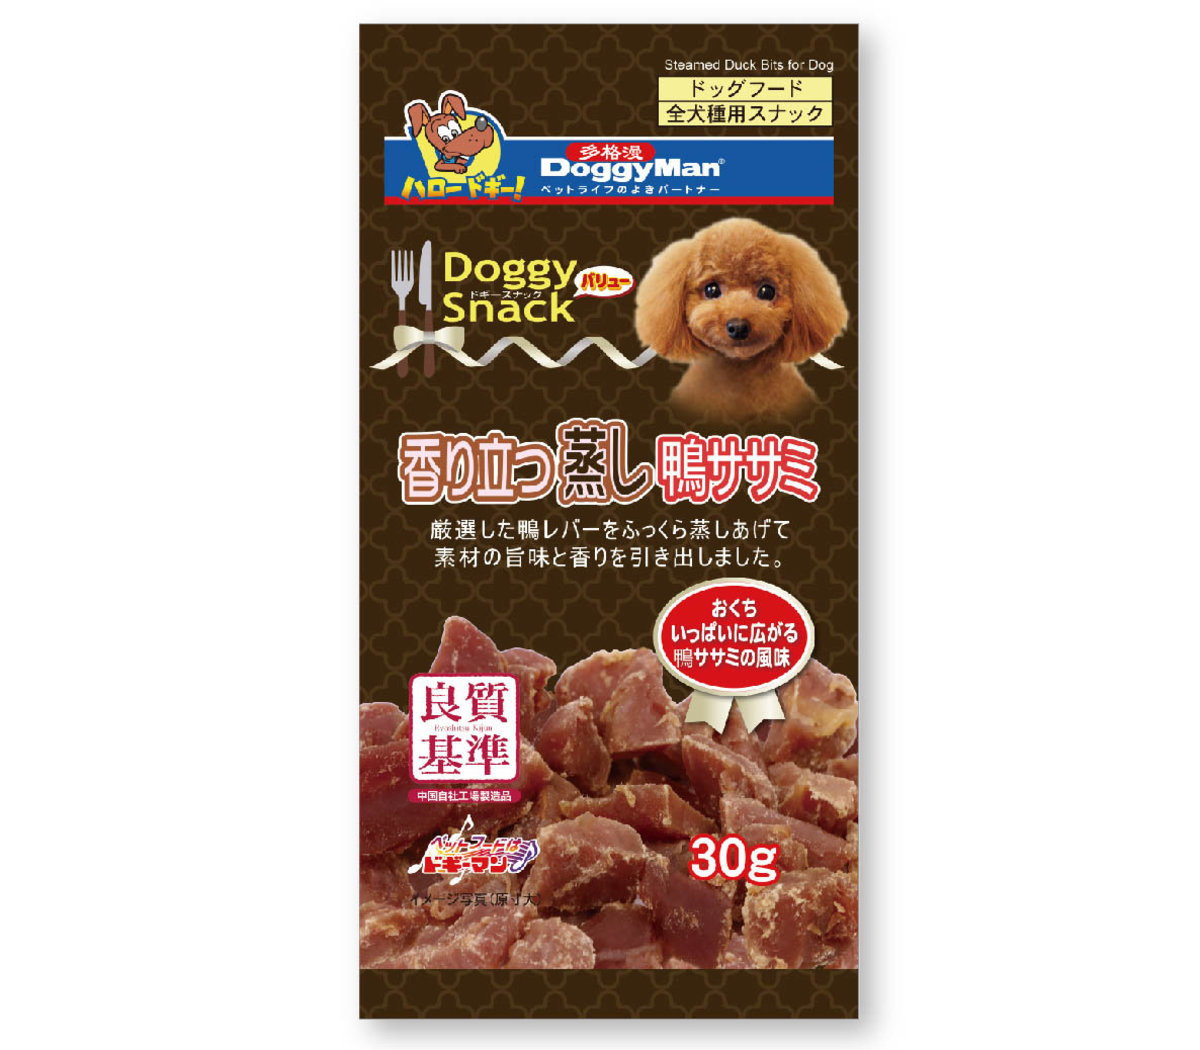 Steamed Duck Bits for Dog (30g) #40118 A2